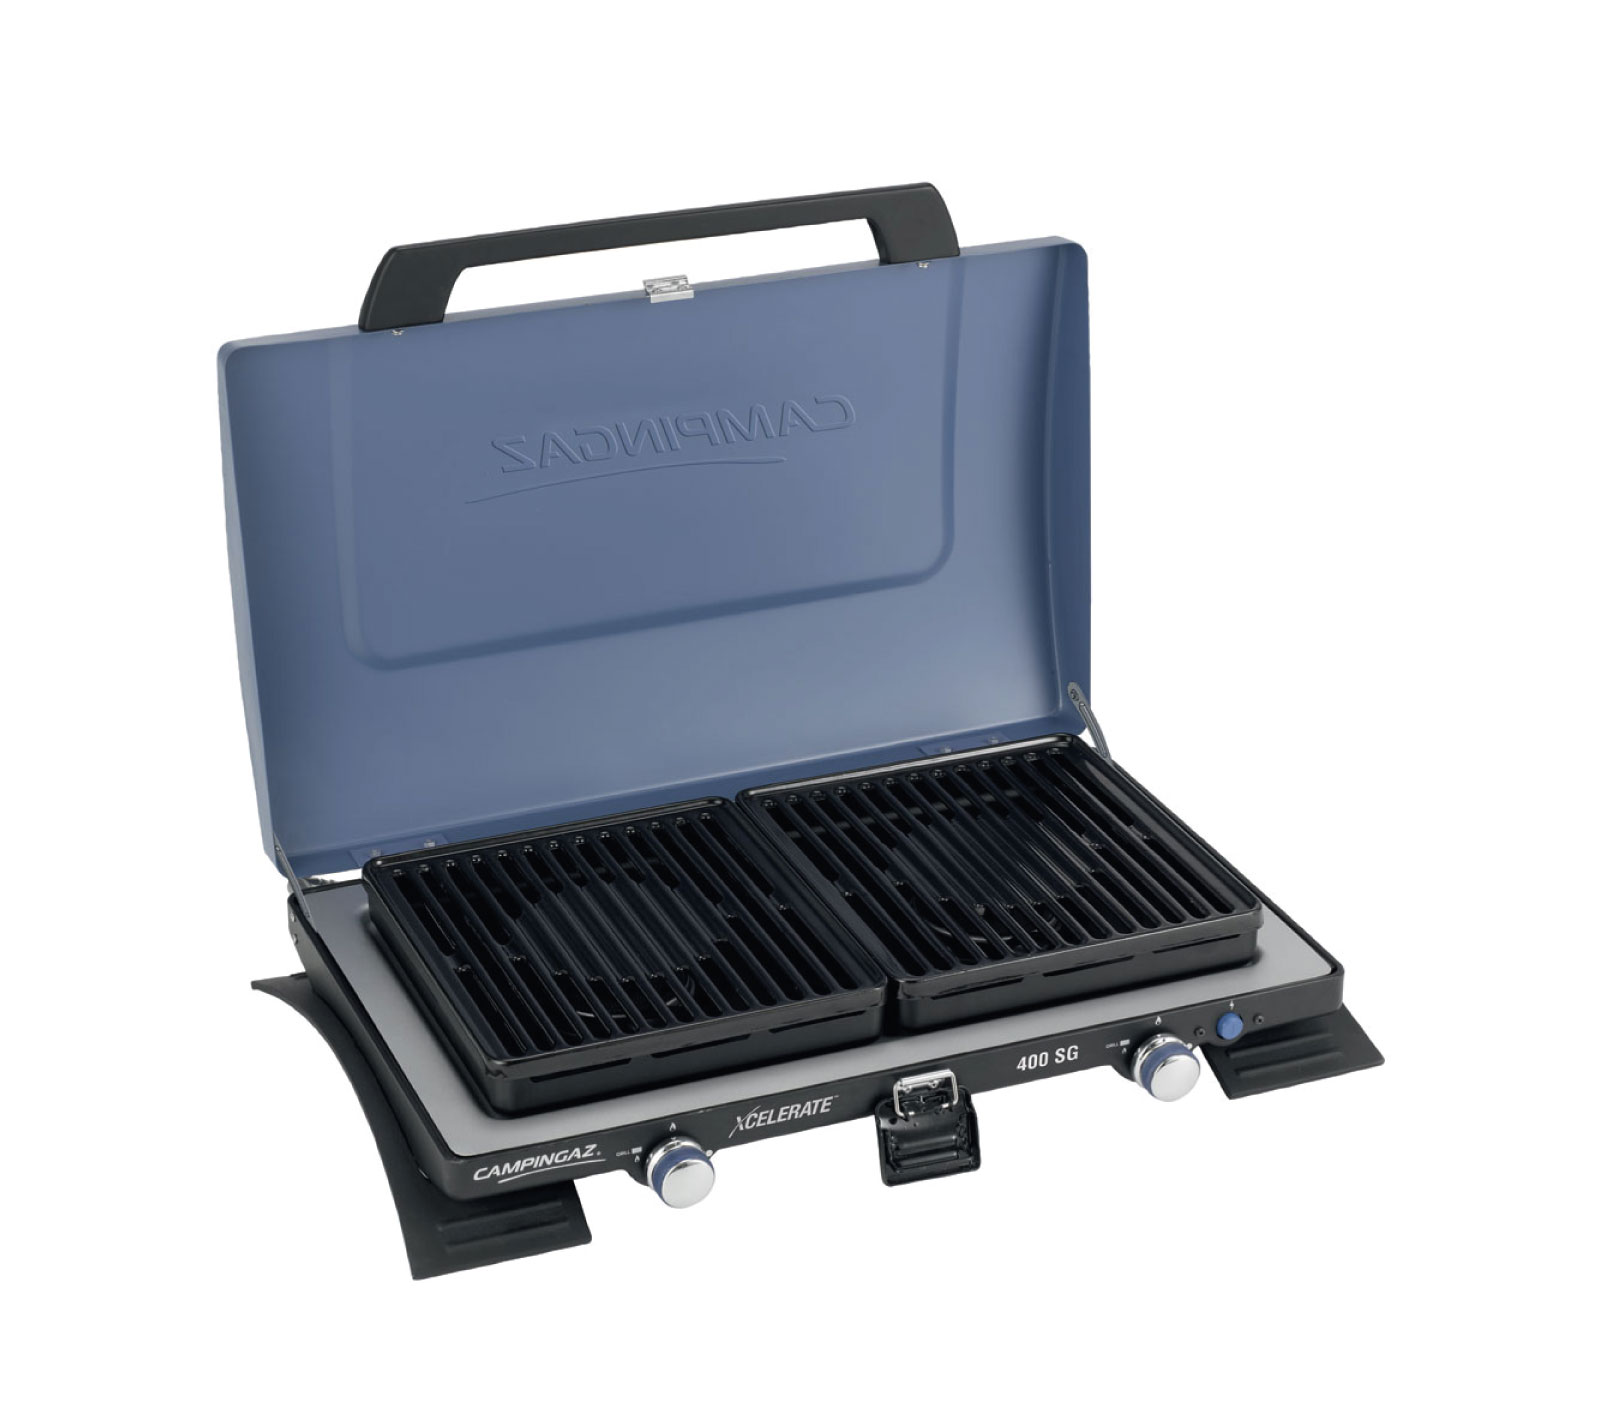 Campingaz 400-sg Stove Grill